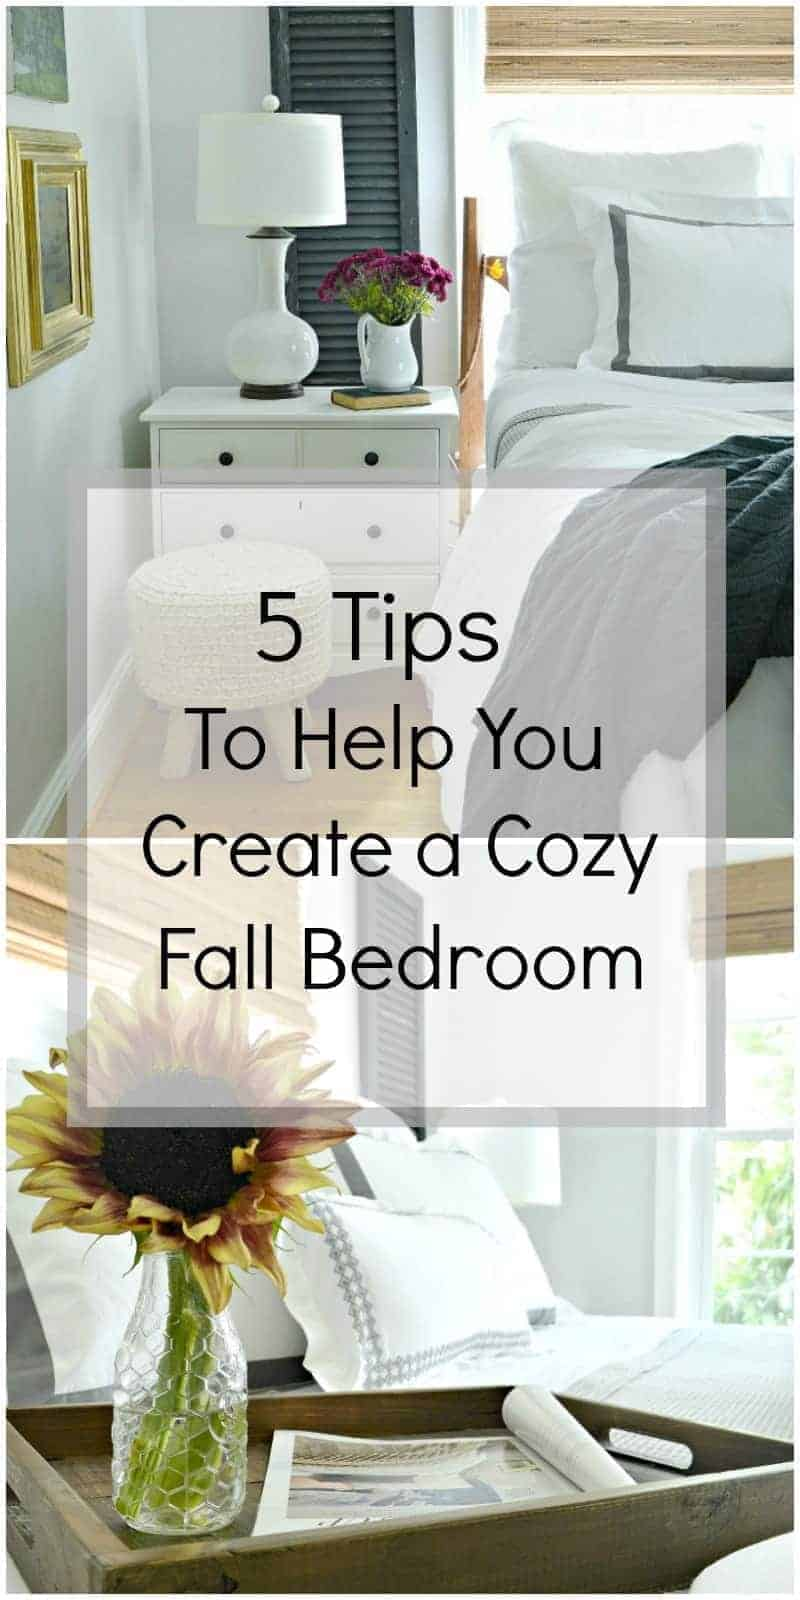 5 tips and ideas to help you create the most comfortable and cozy bedroom for fall by adding beautiful linens, layers, pillows and texture.